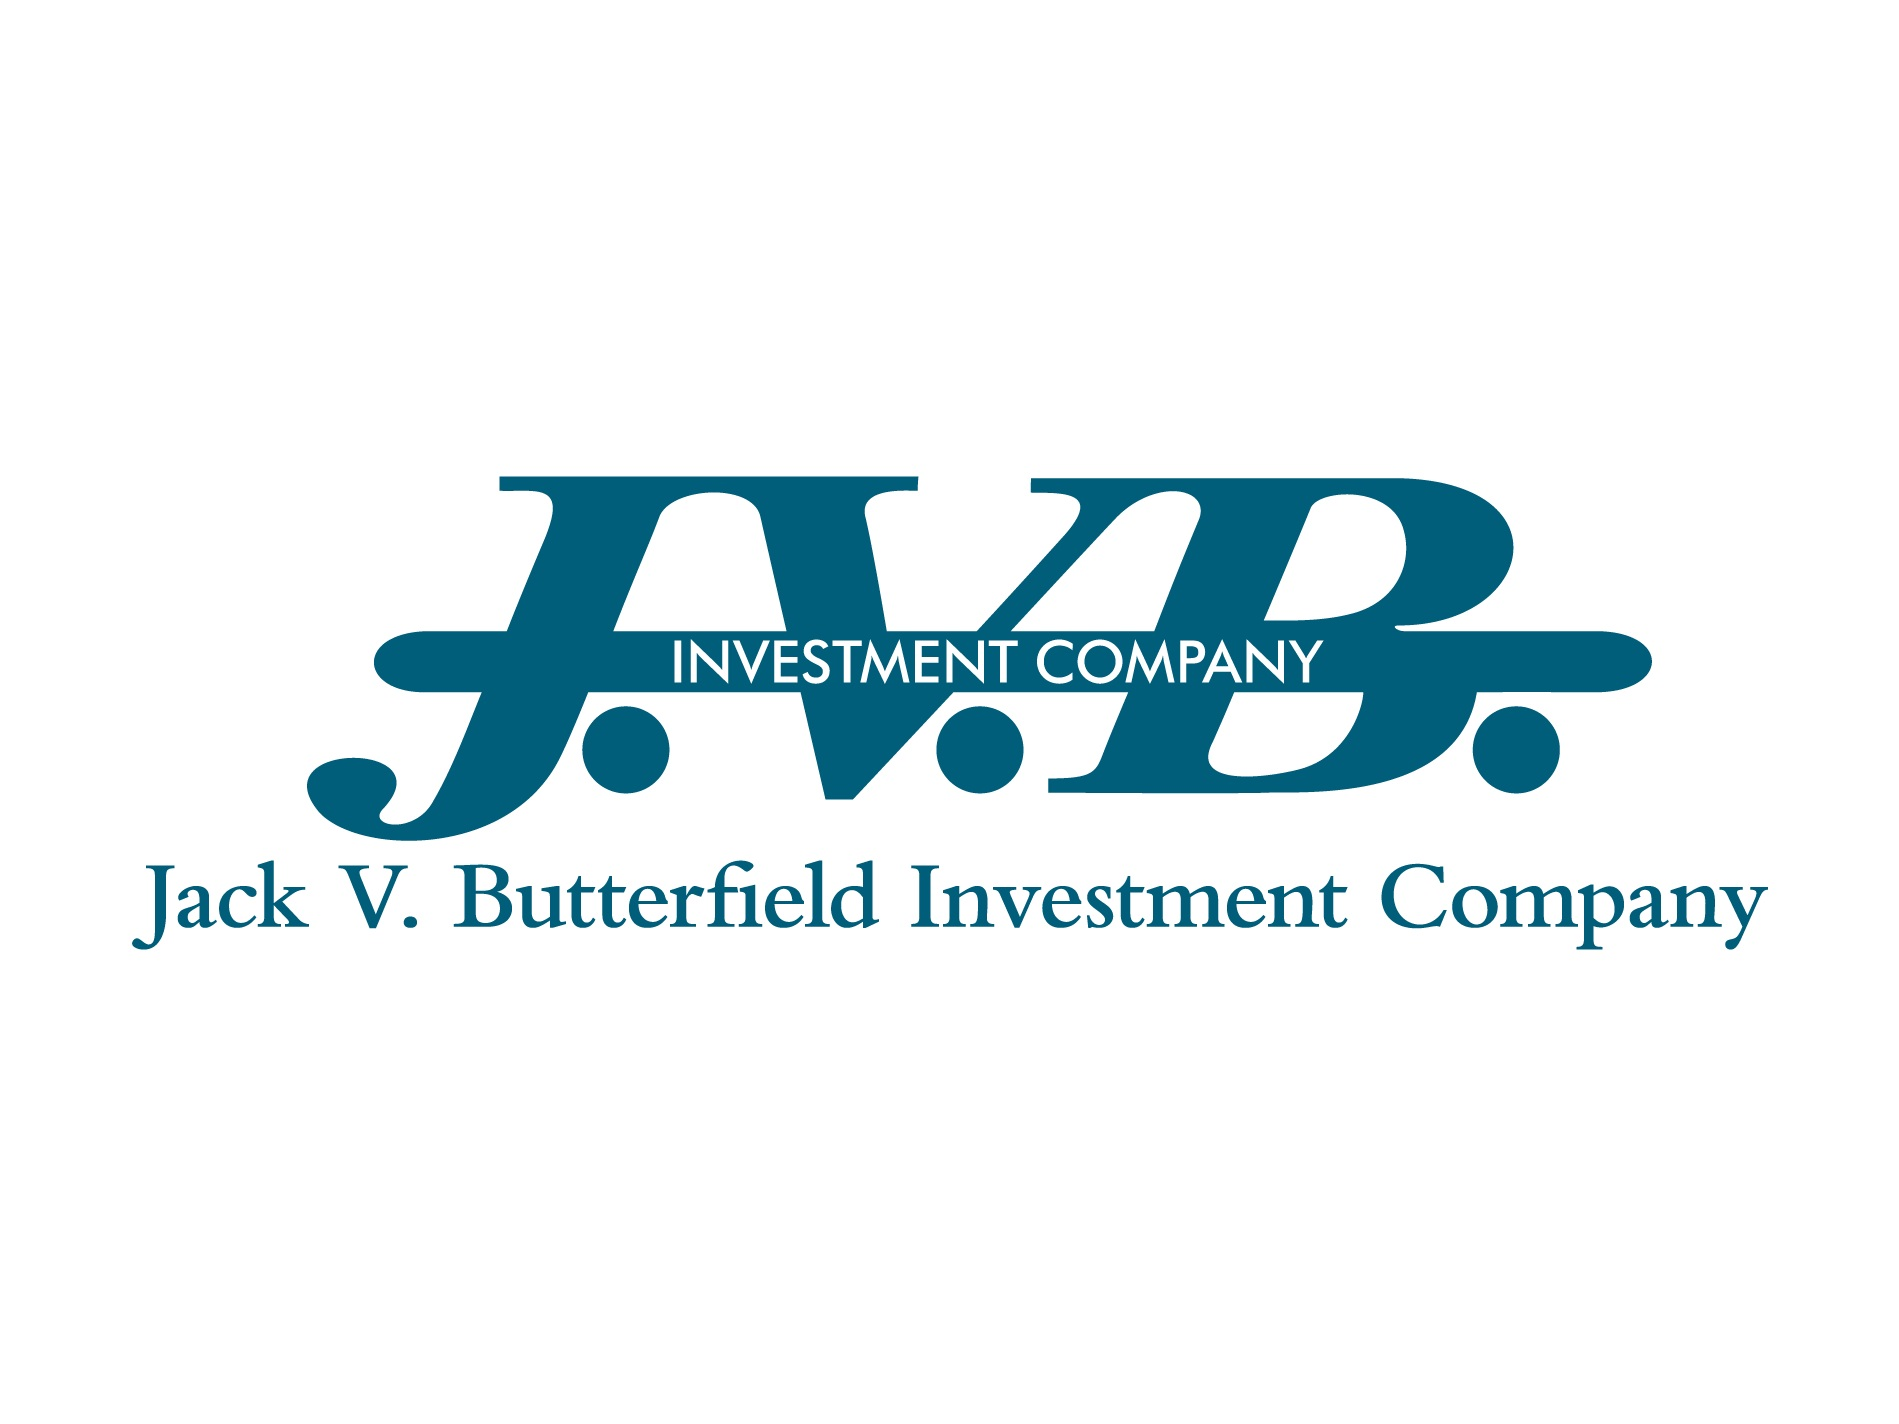 Jack V. Butterfield Investment Company